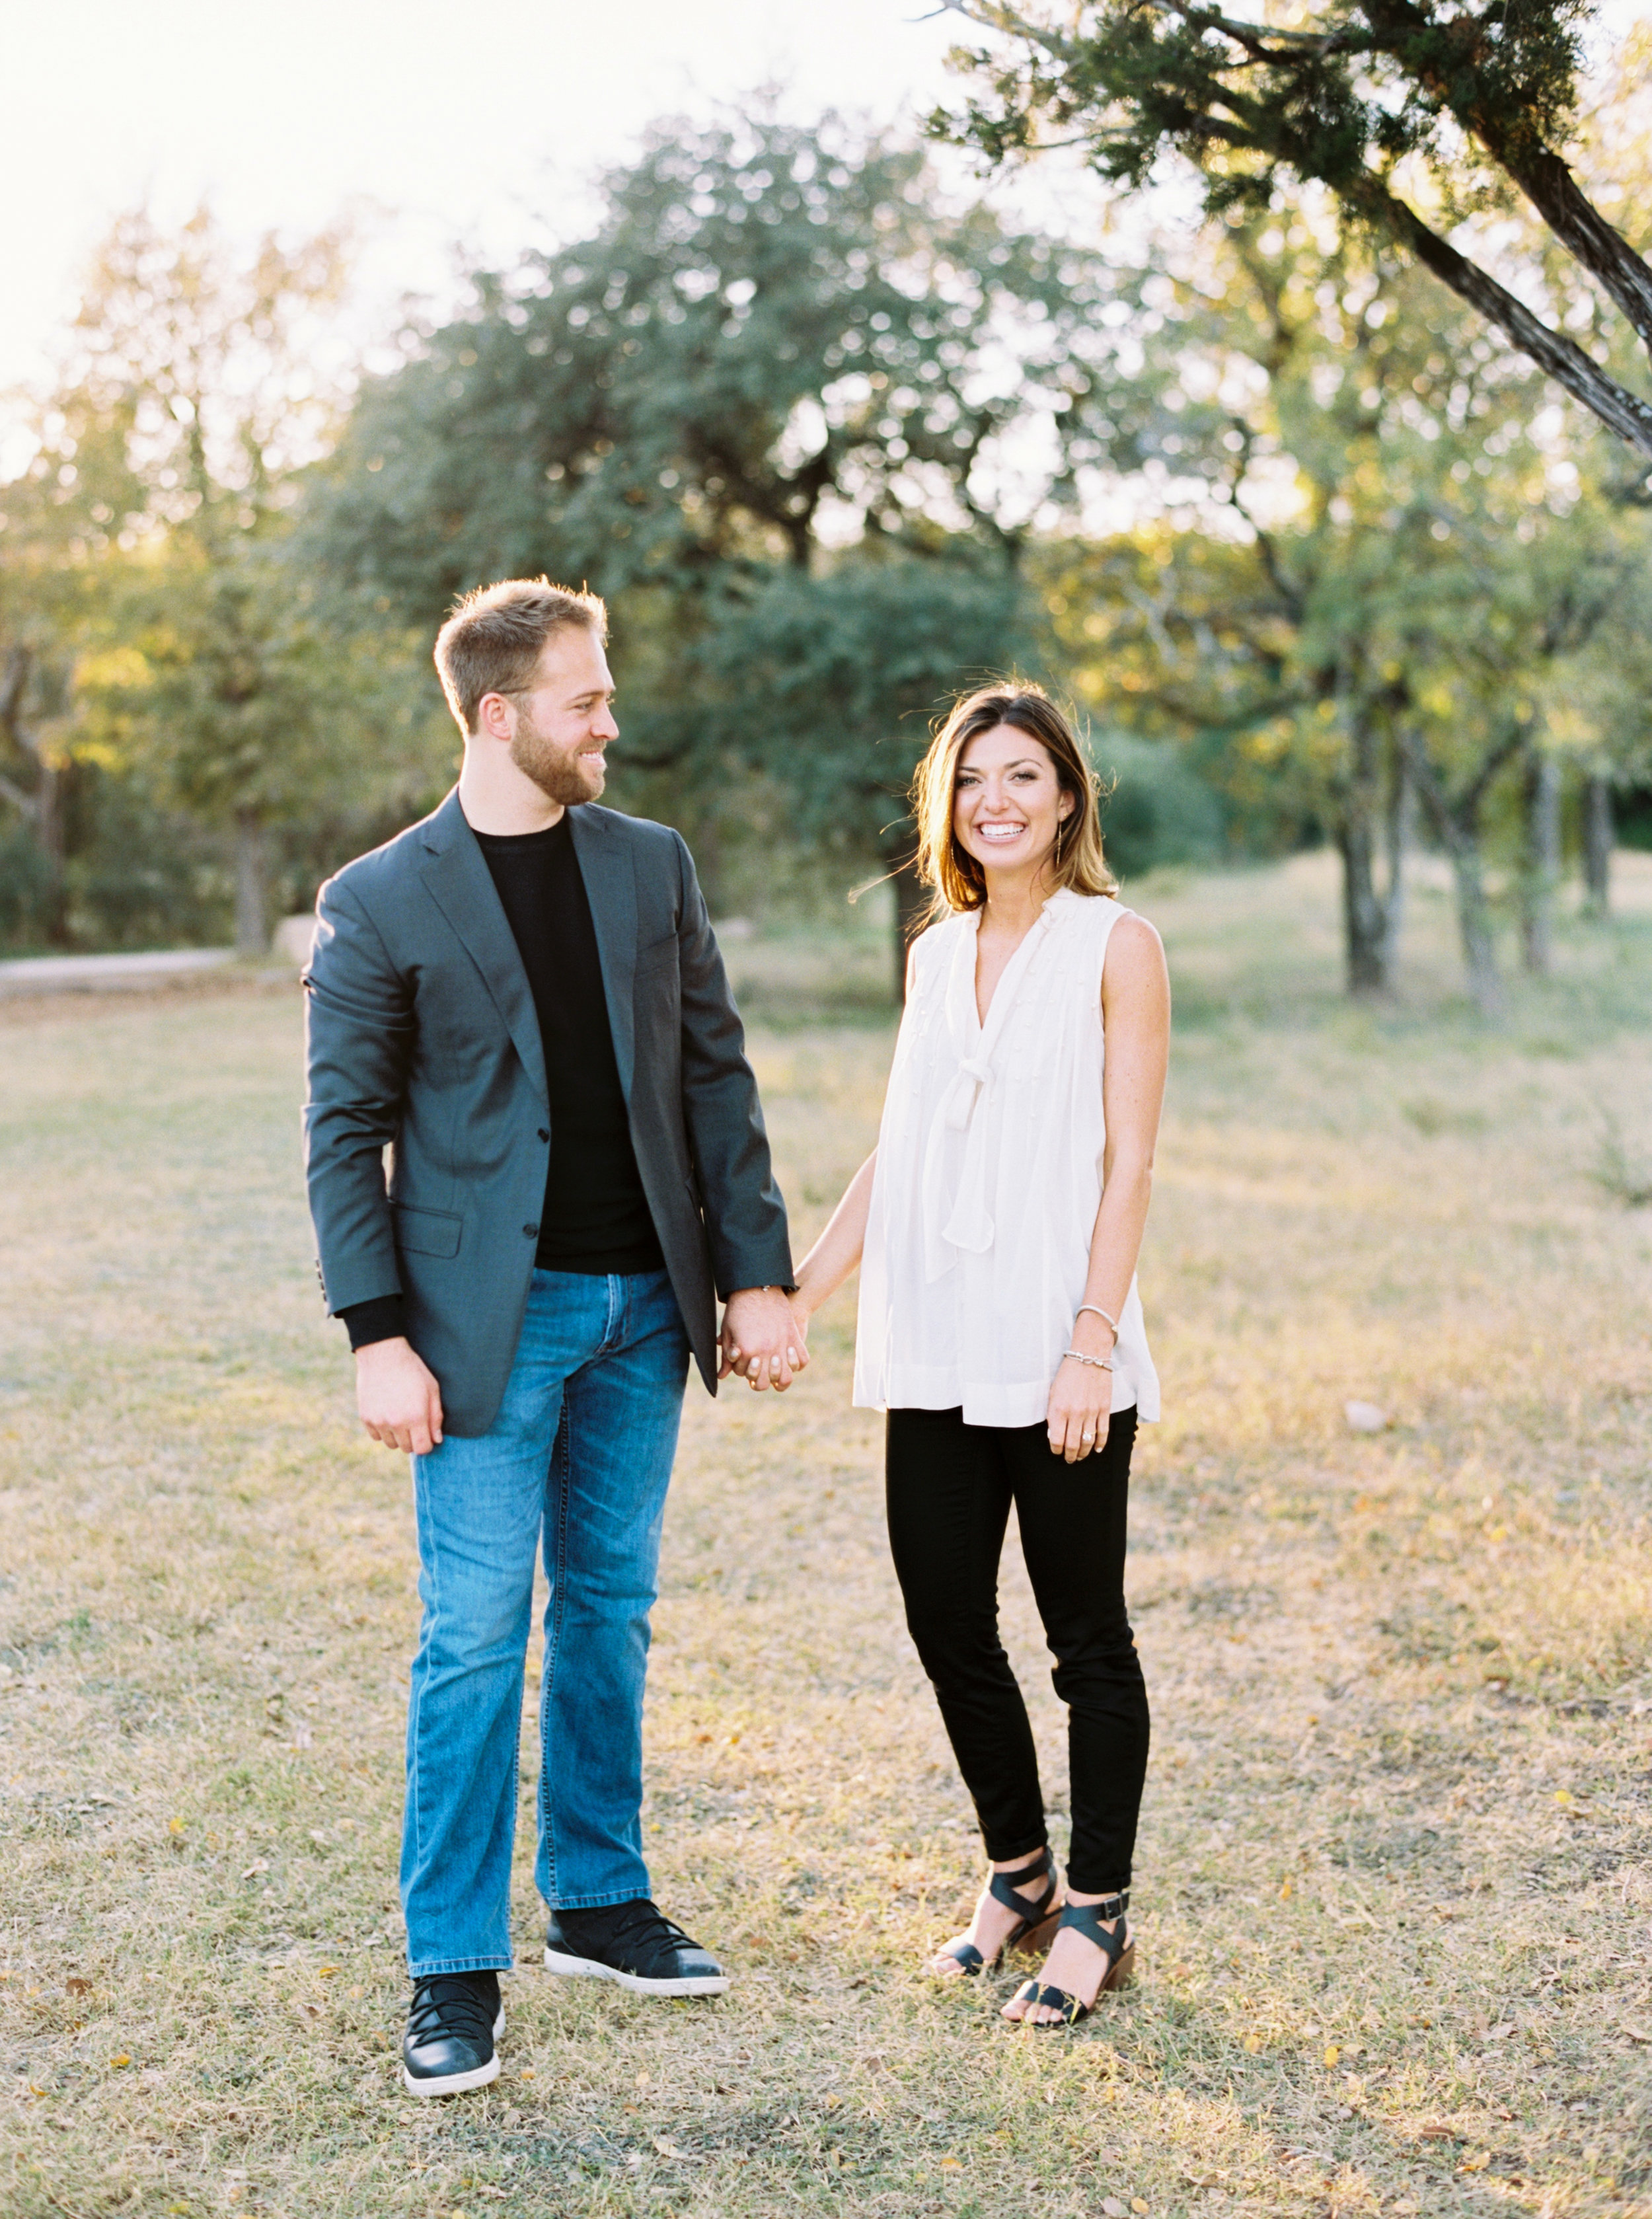 Engagement Session Outfits-159.jpg